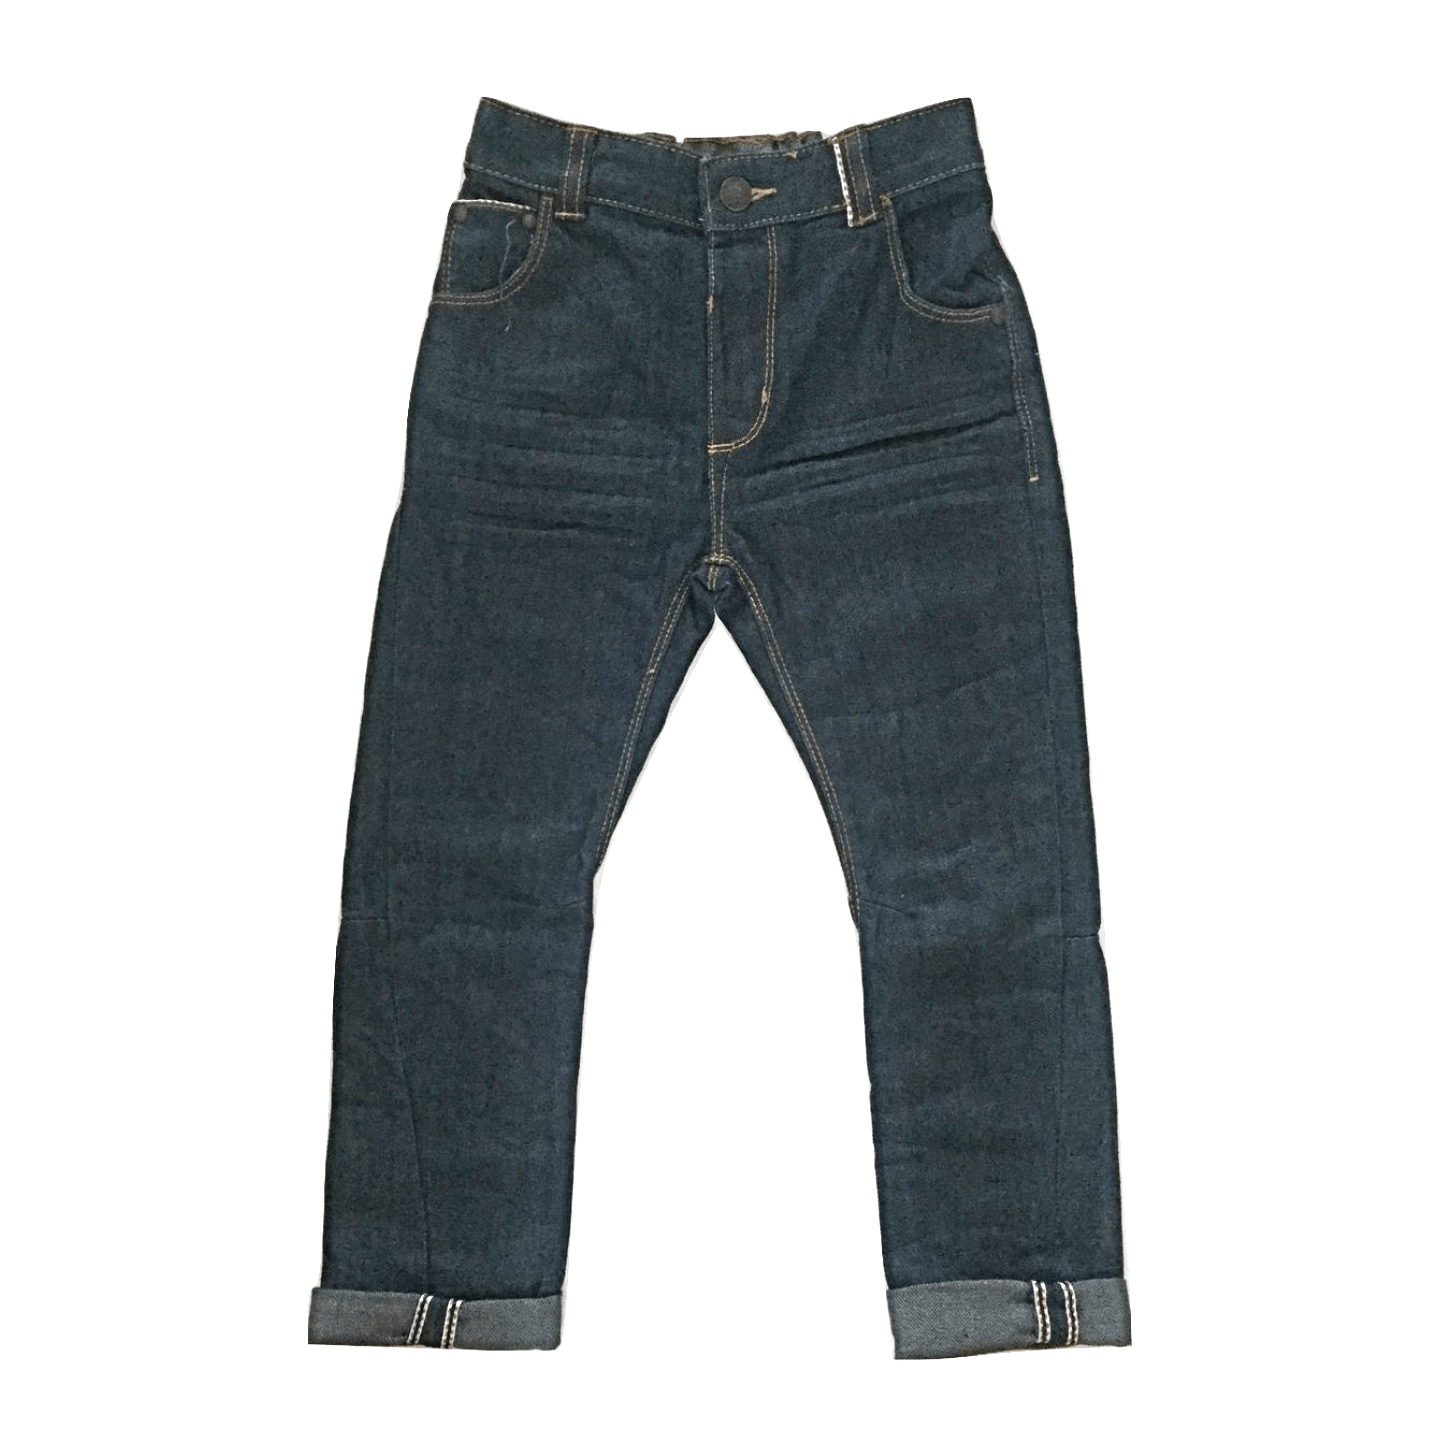 George Baby Boys Fold-up Navy Blue Jeans